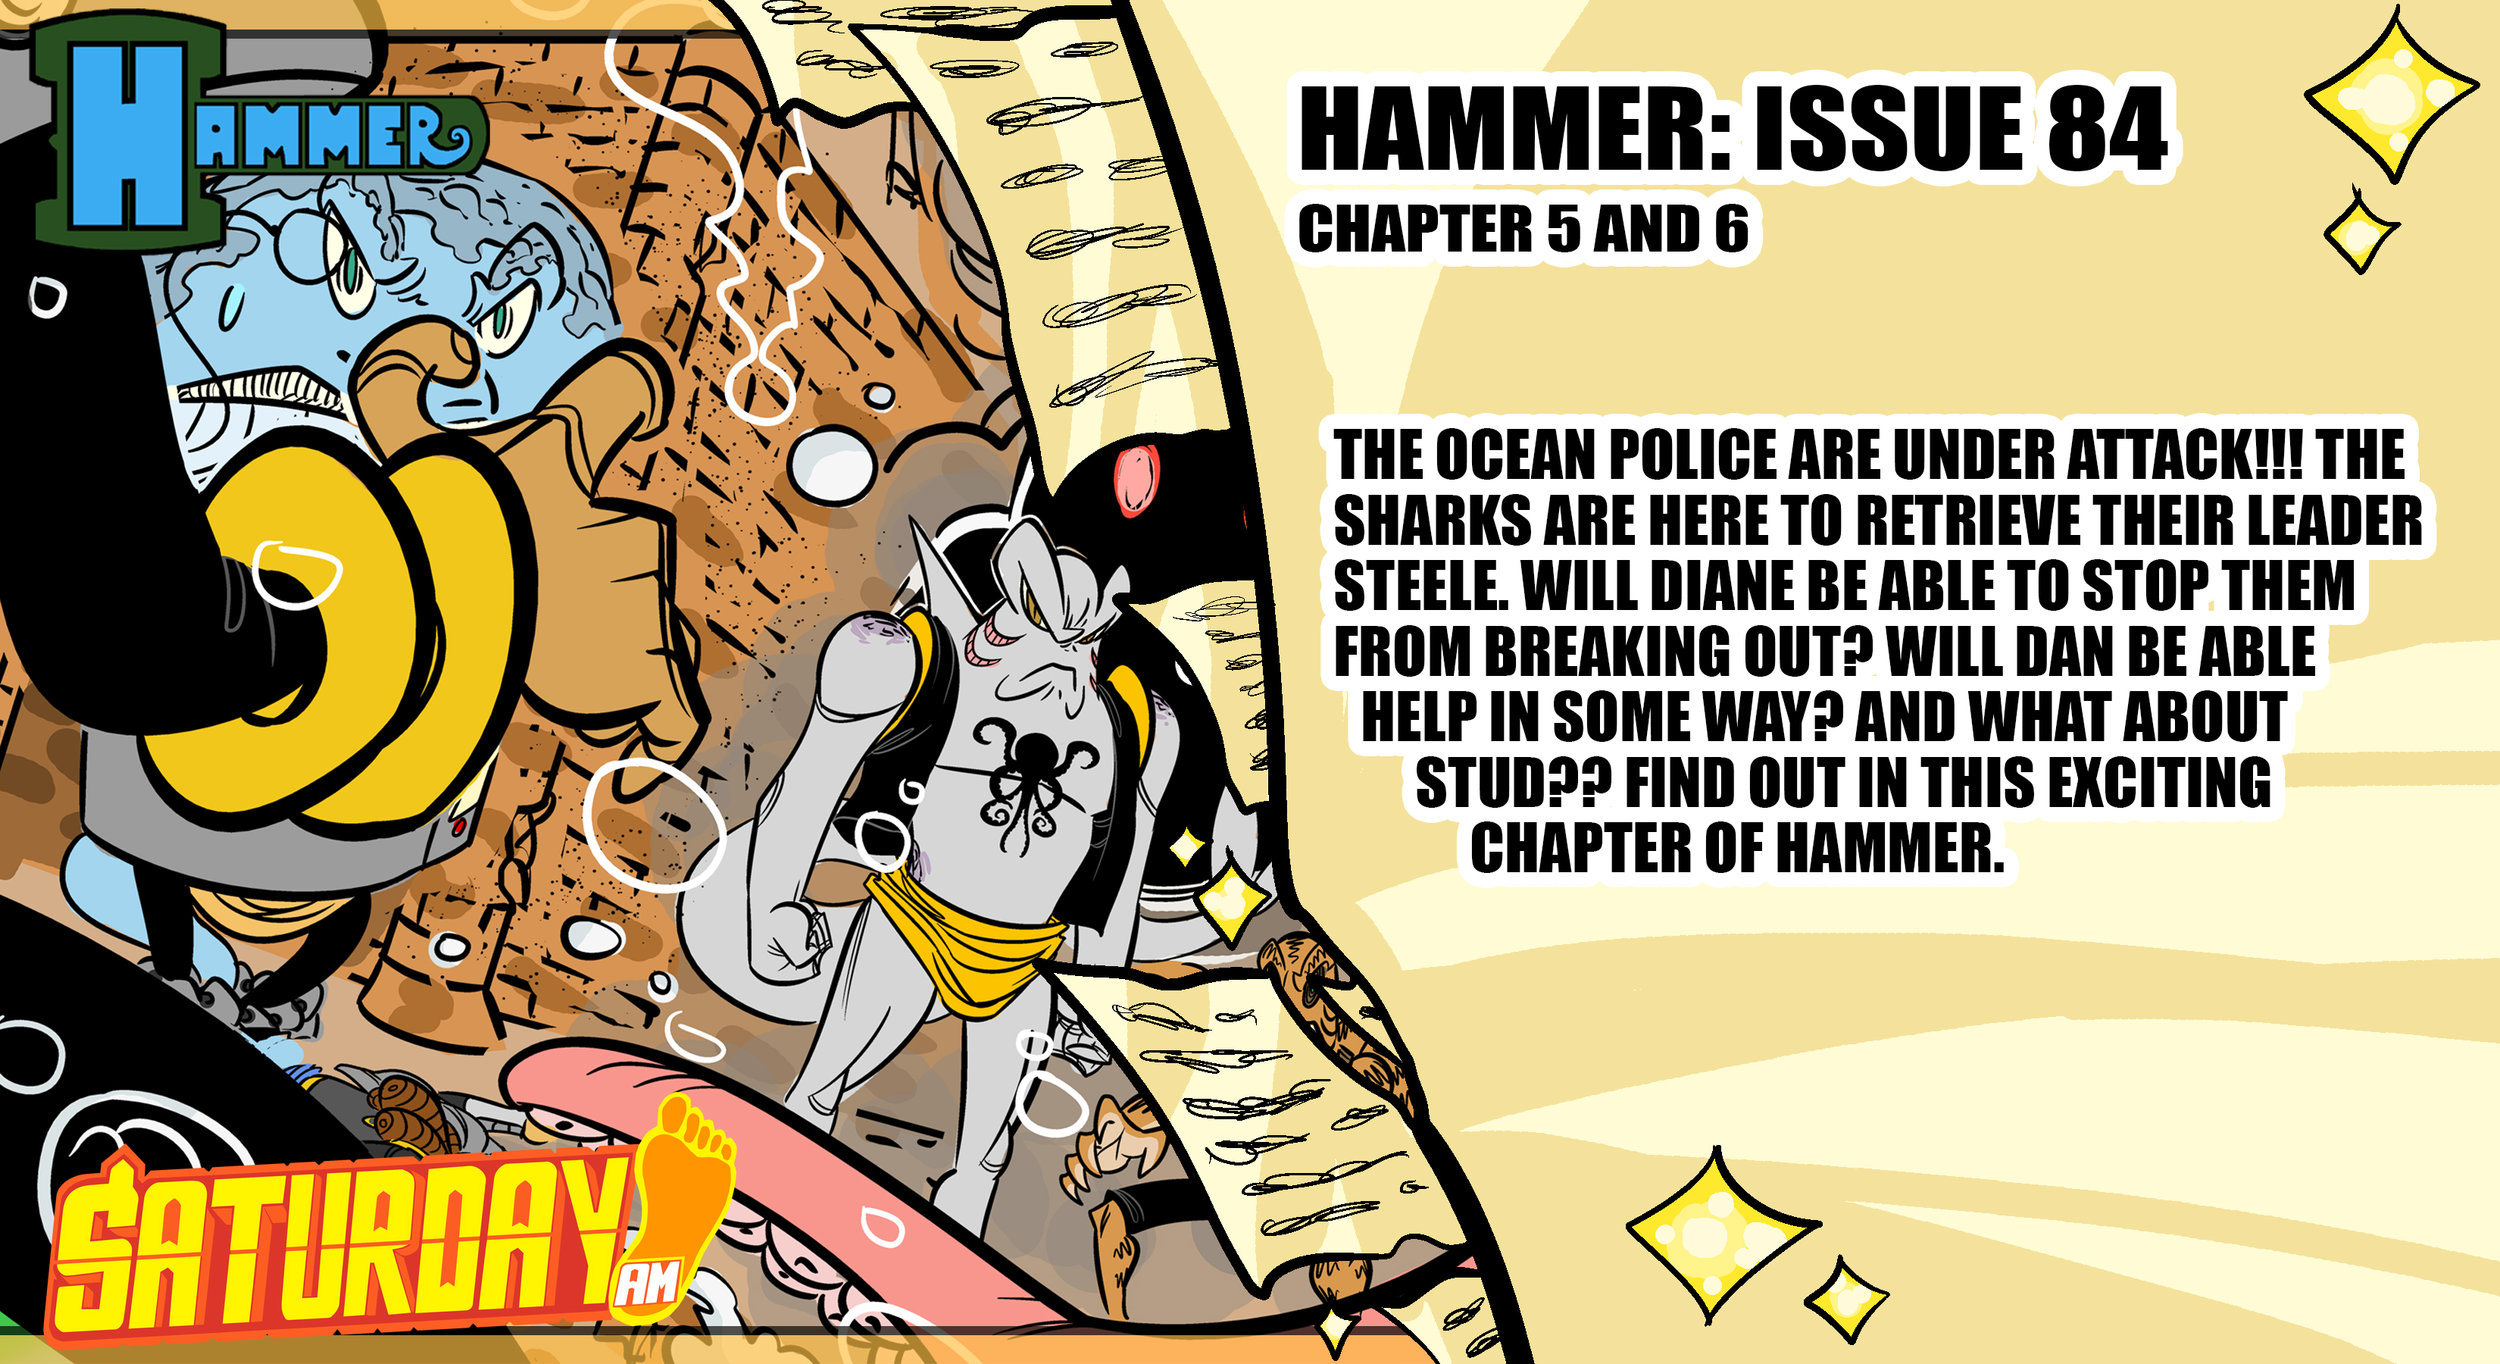 HAMMER WEBSITE_LATEST ISSUE GRAPHIC #84.jpg